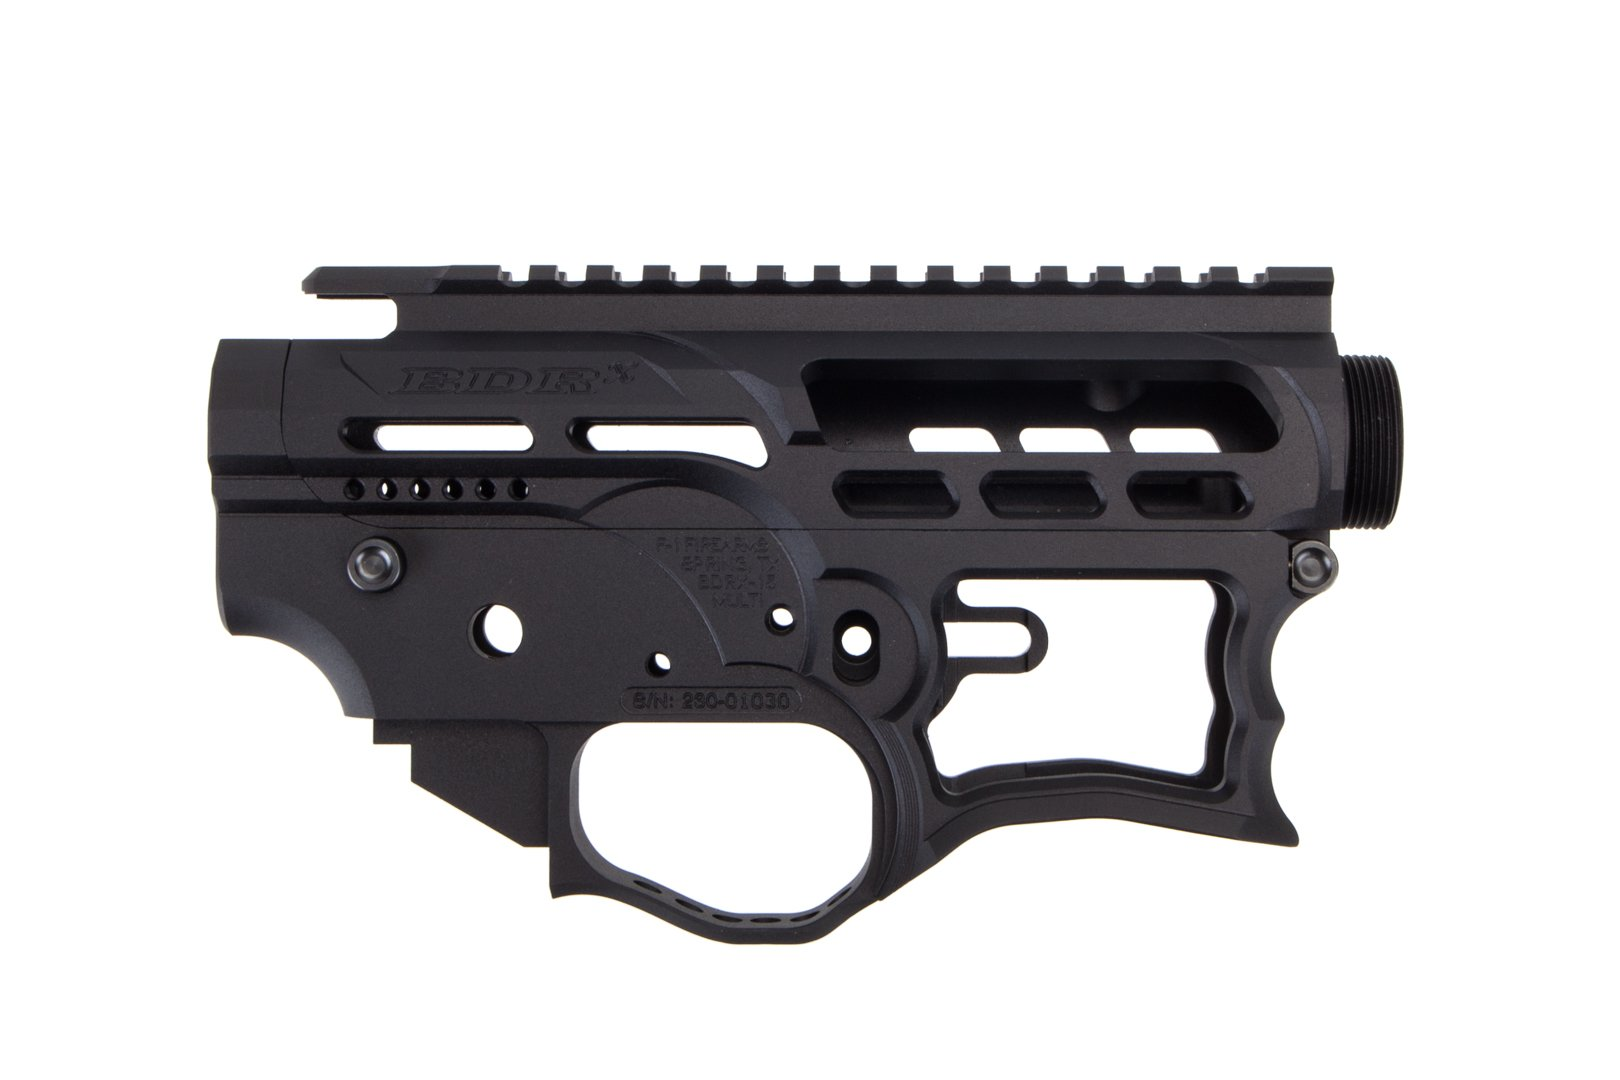 Trojan Firearms AR-15 BYOG-9G Stripped Receiver Set - 9mm